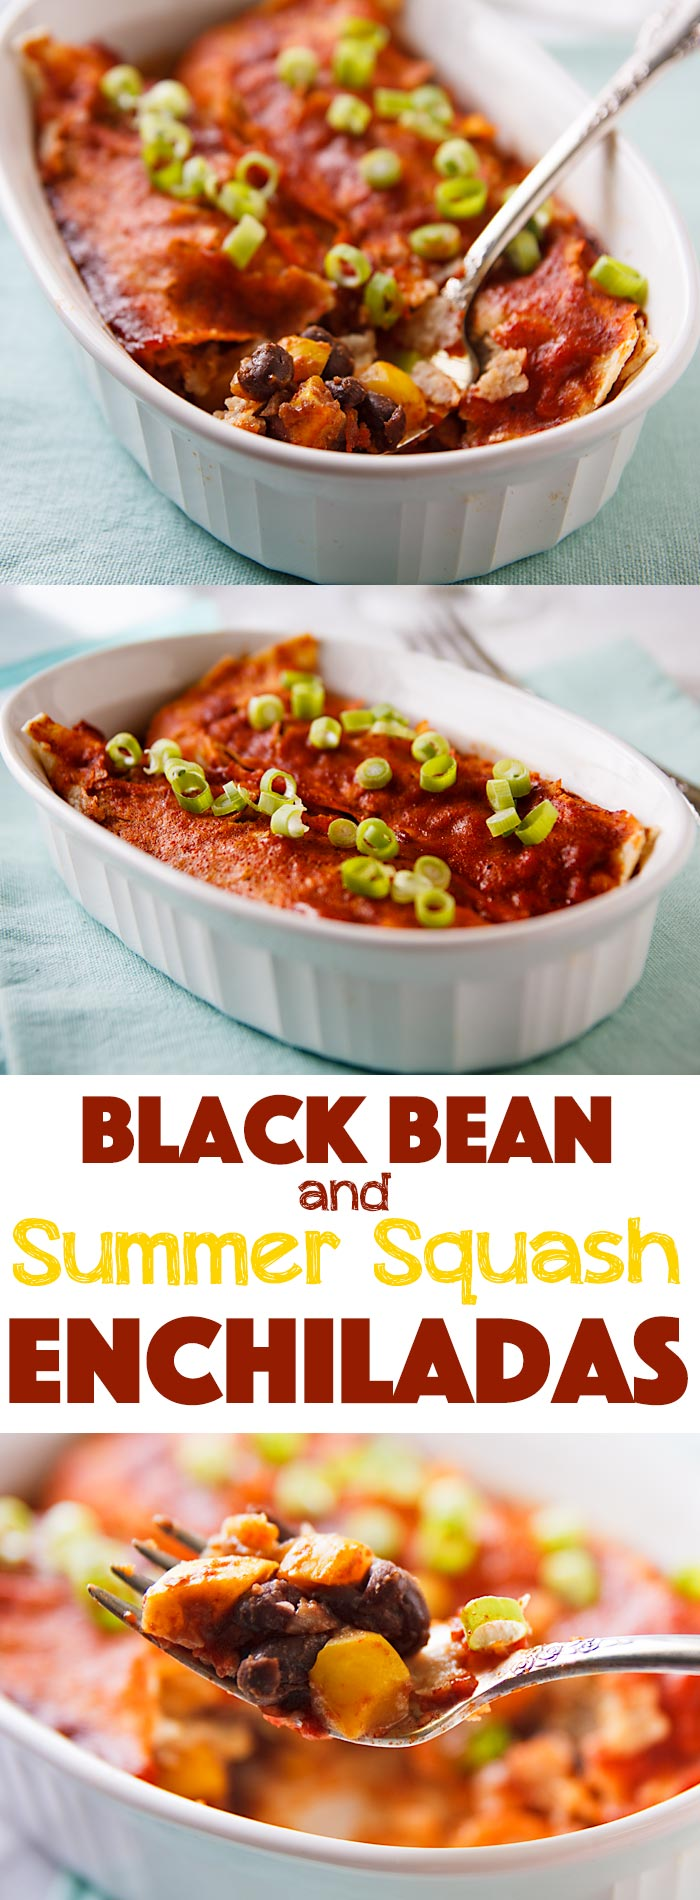 Black Bean and Summer Squash Enchiladas are the perfect light meal. Summer squash add heartiness without adding calories to these low-fat, vegan enchiladas.